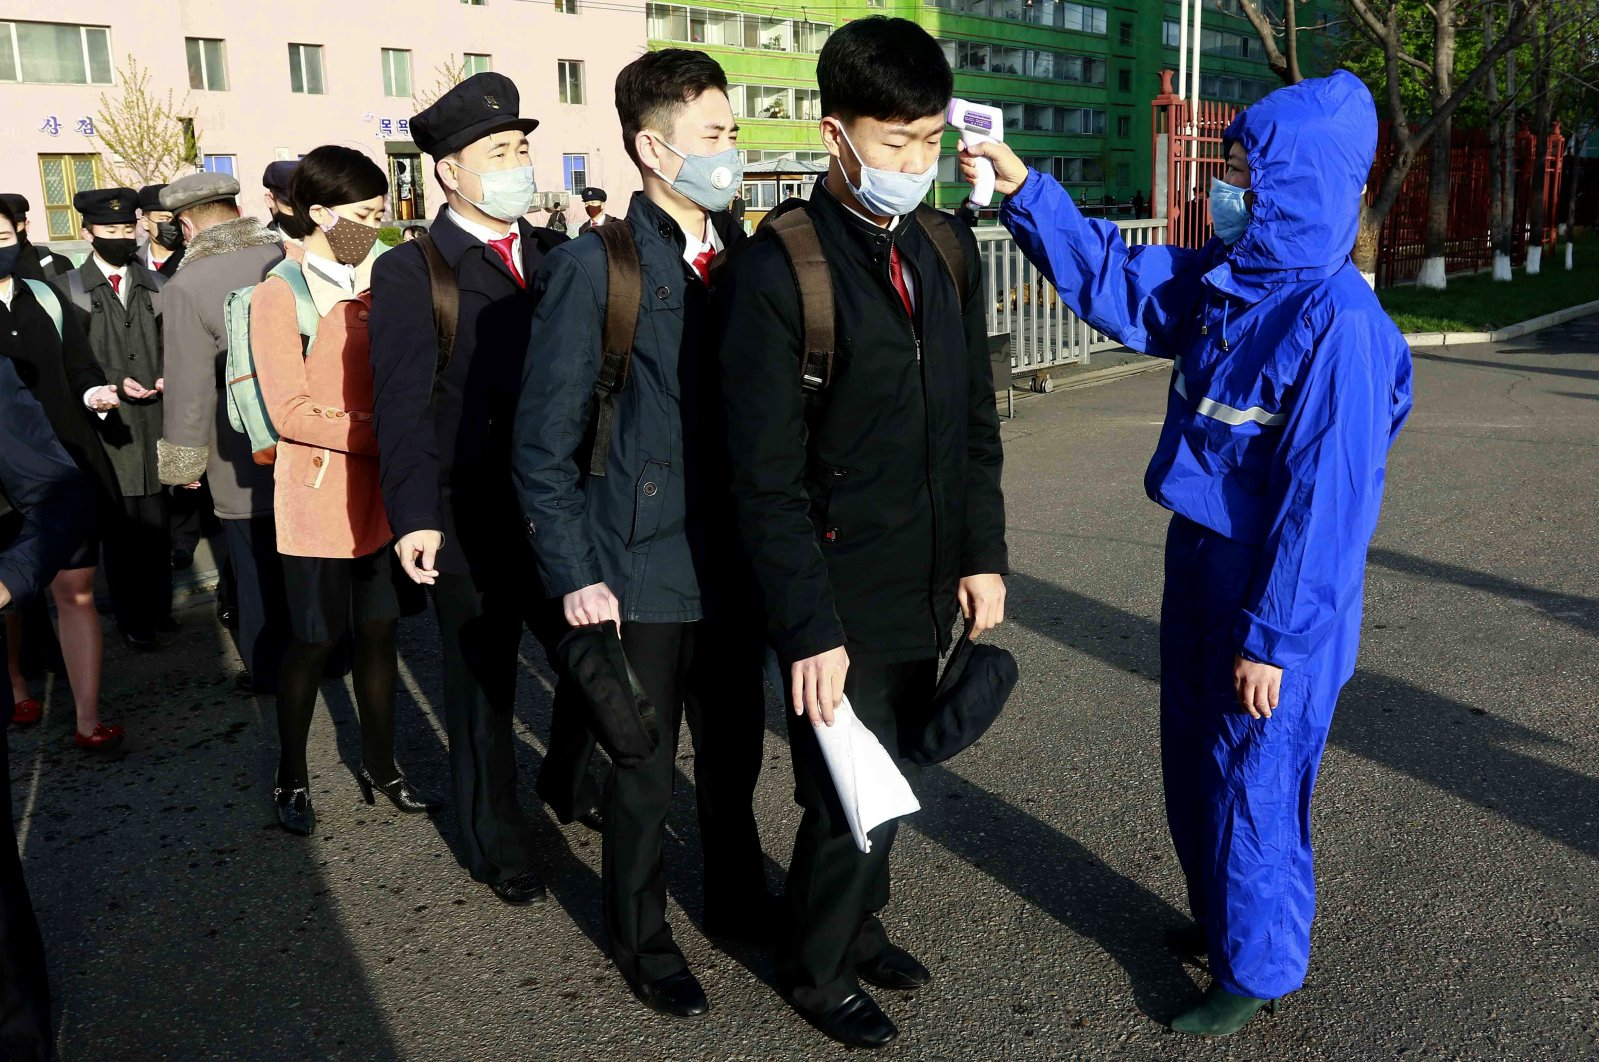 Students wearing face masks have their temperature checked as a precaution against the new coronavirus before returning to classes at Kim Chaek University of Technology, Pyongyang, North Korea, April 22, 2020. (AP Photo)